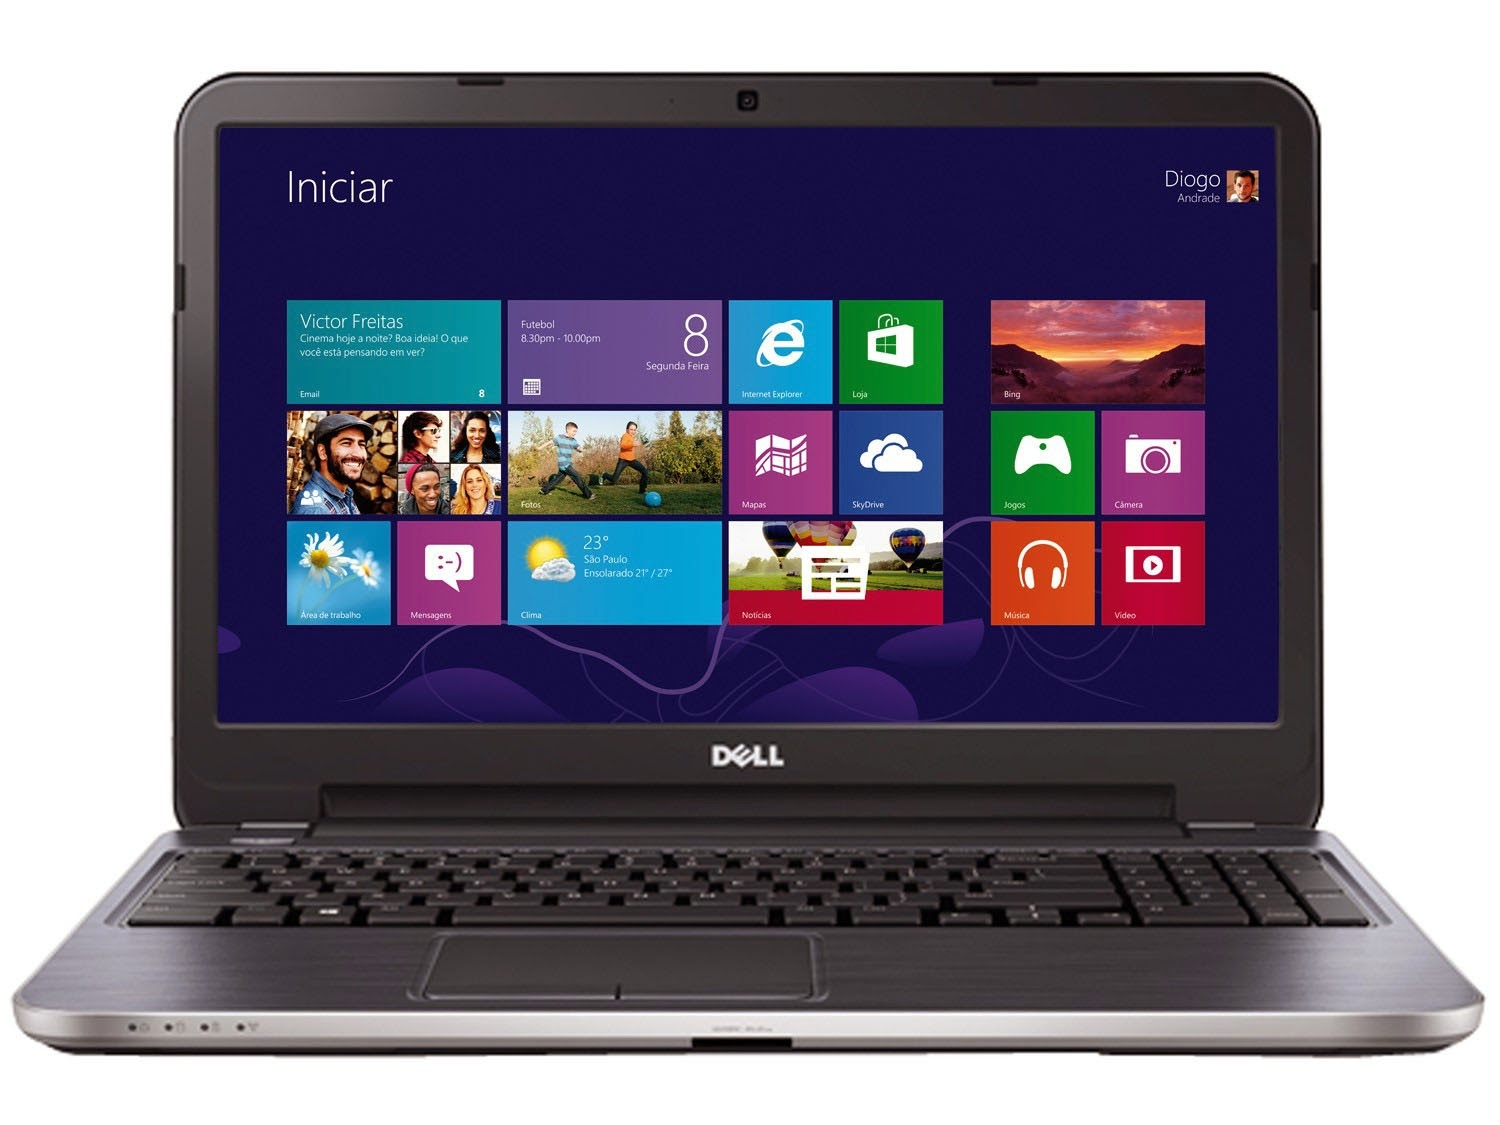 Fix dell touchpad not working issue for windows 10 driver easy.